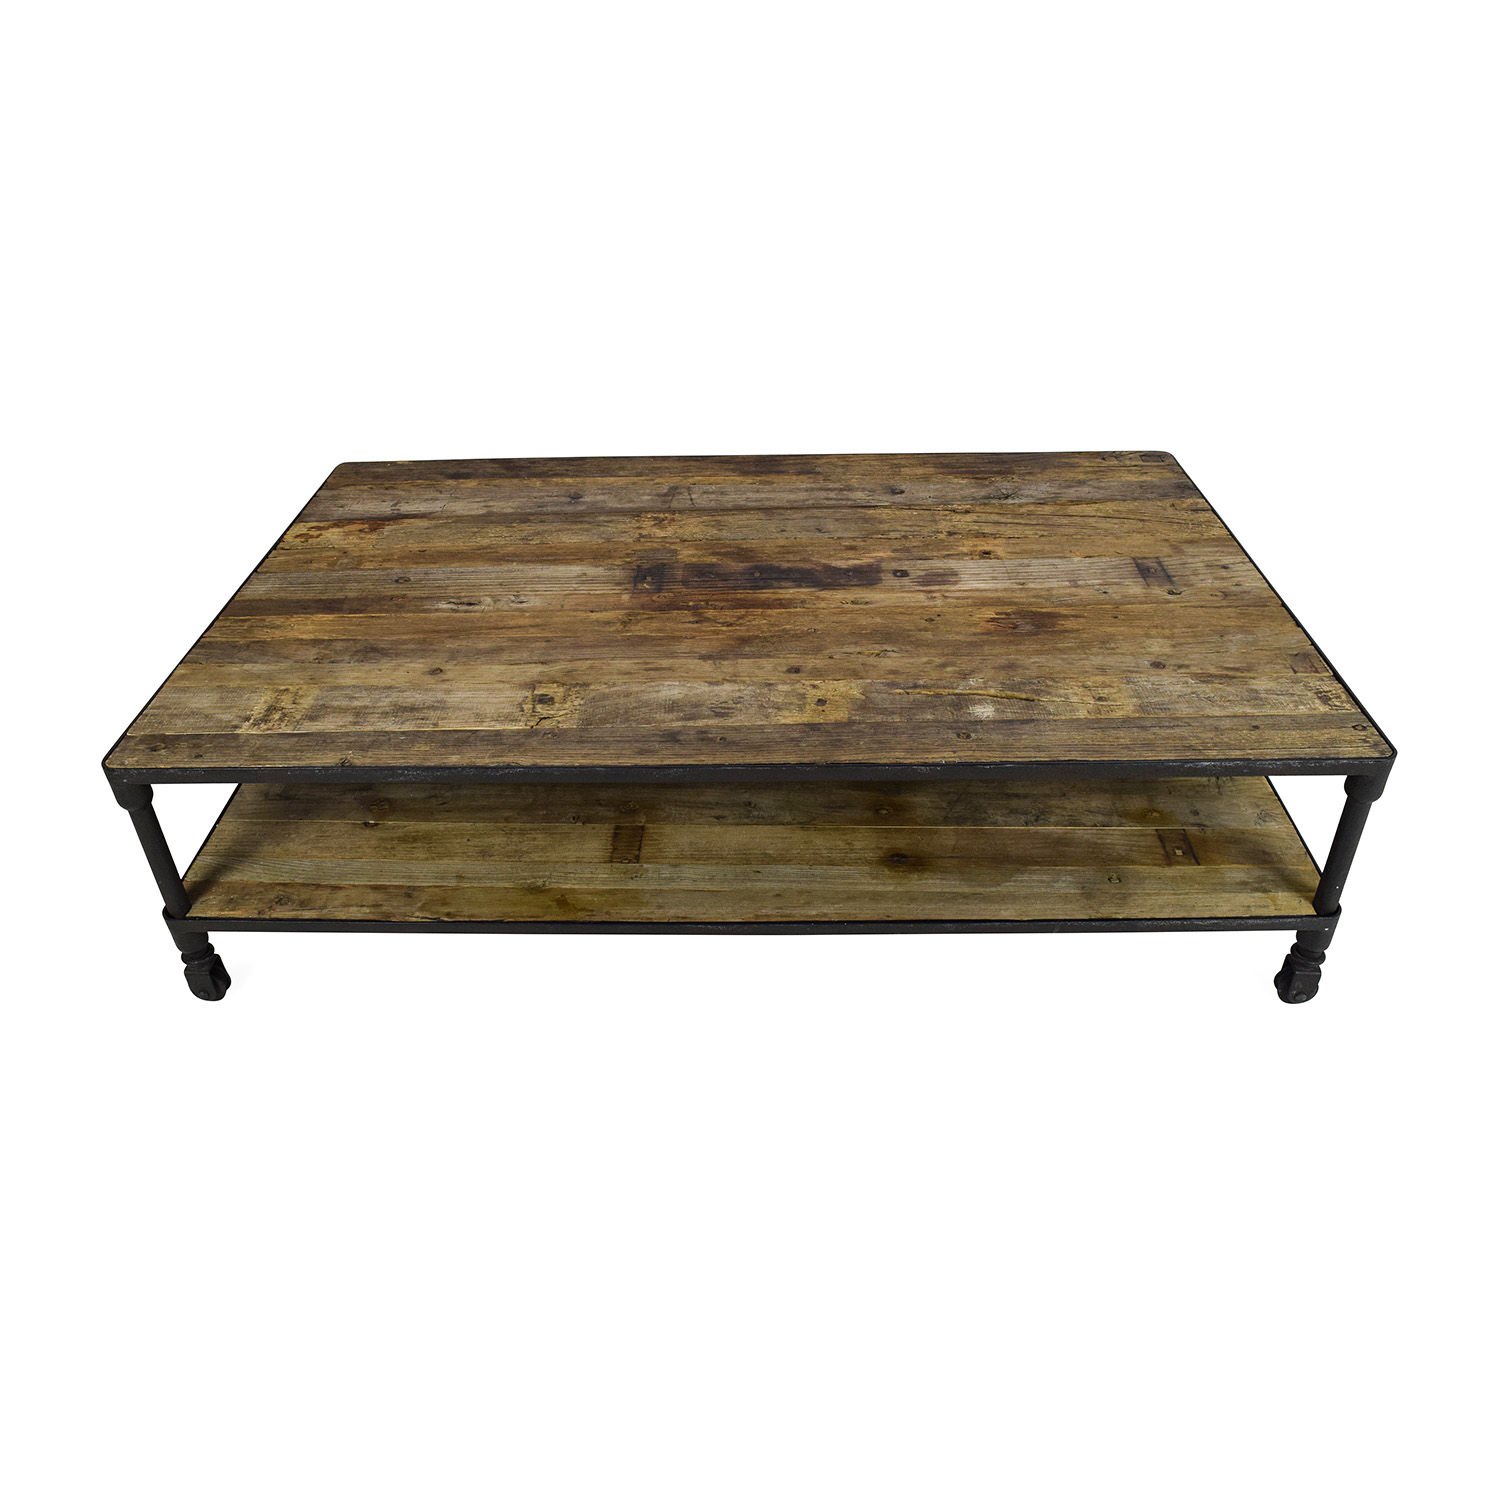 43% OFF Javanese Mahogany and Glass Coffee Table Tables